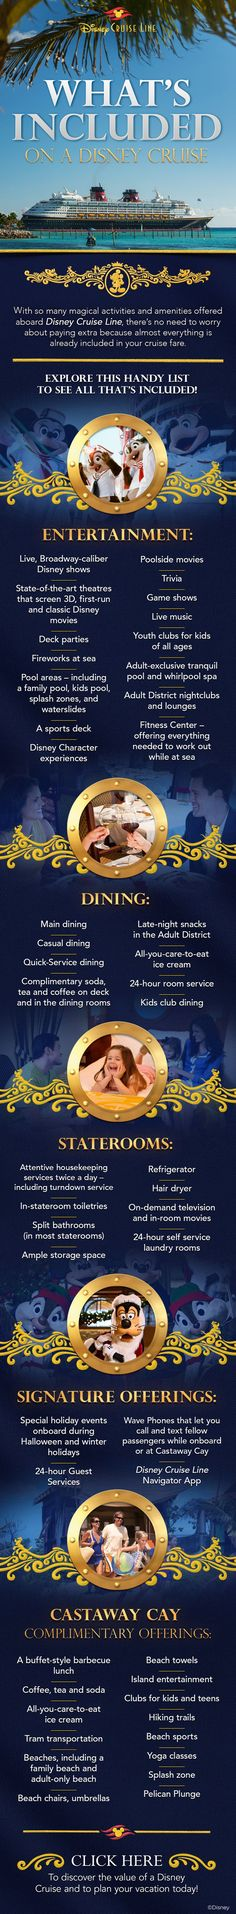 Learn what's included on a Disney Cruise with this handy infographic!